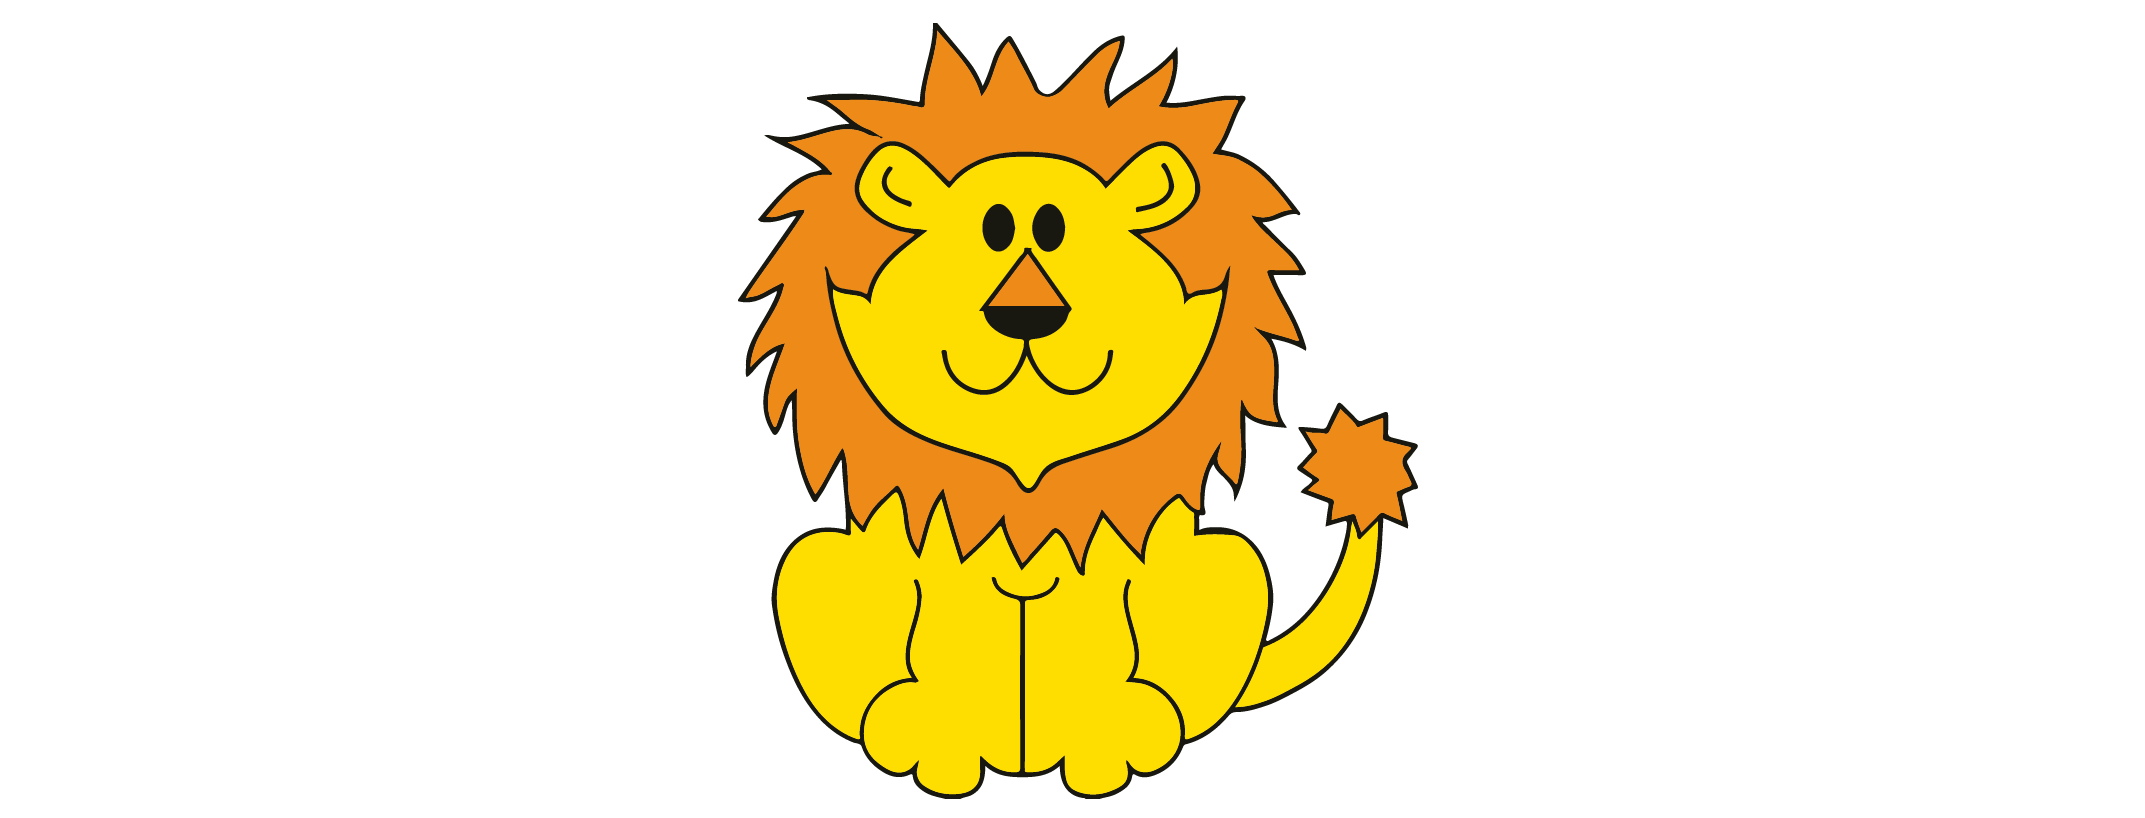 lion space.png